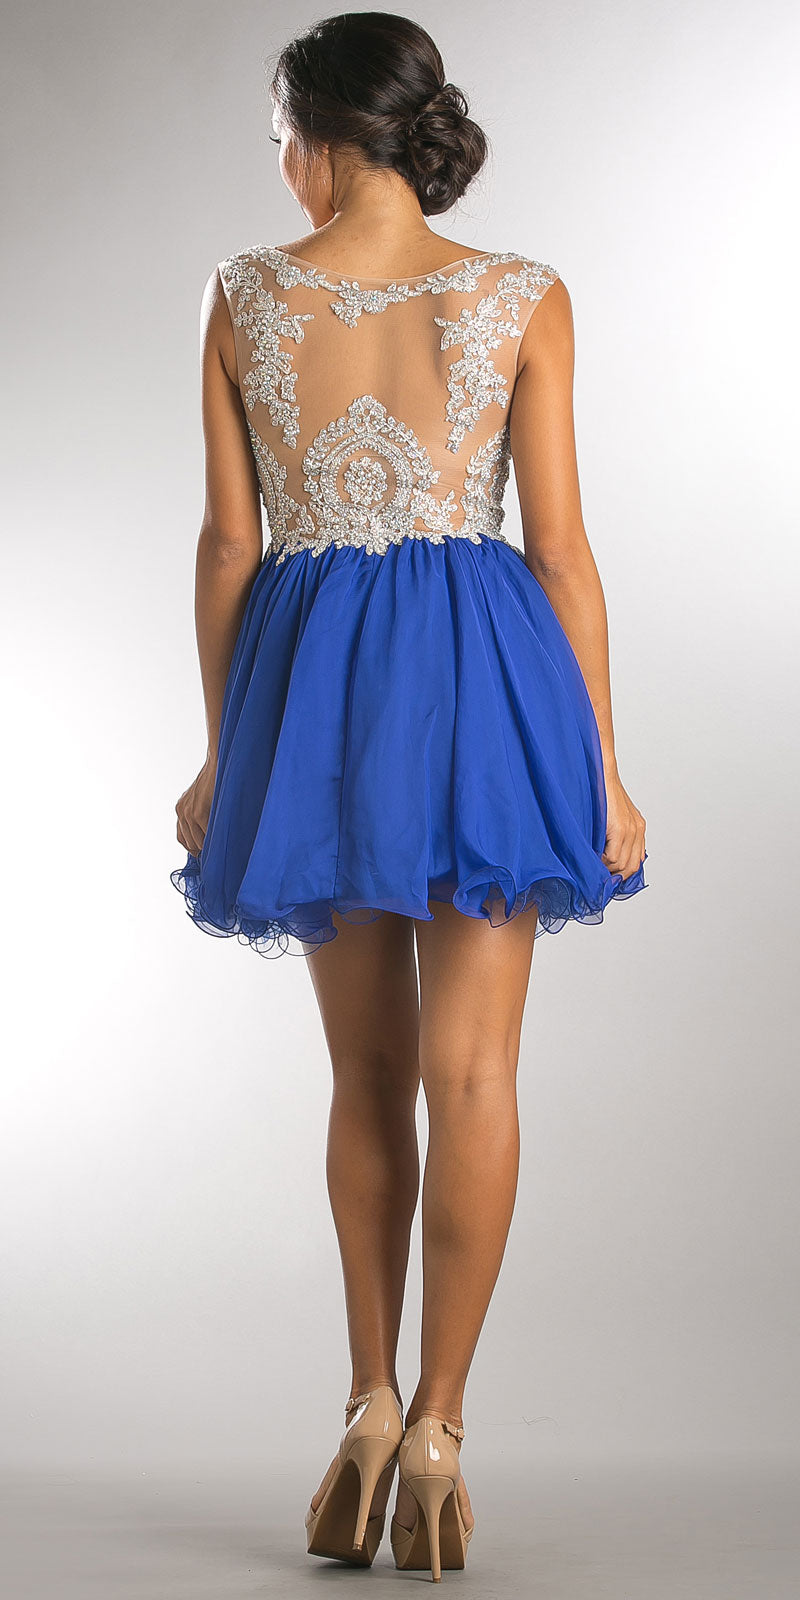 Back image of Embellished Lace Bodice Short Babydoll Homecoming Dress